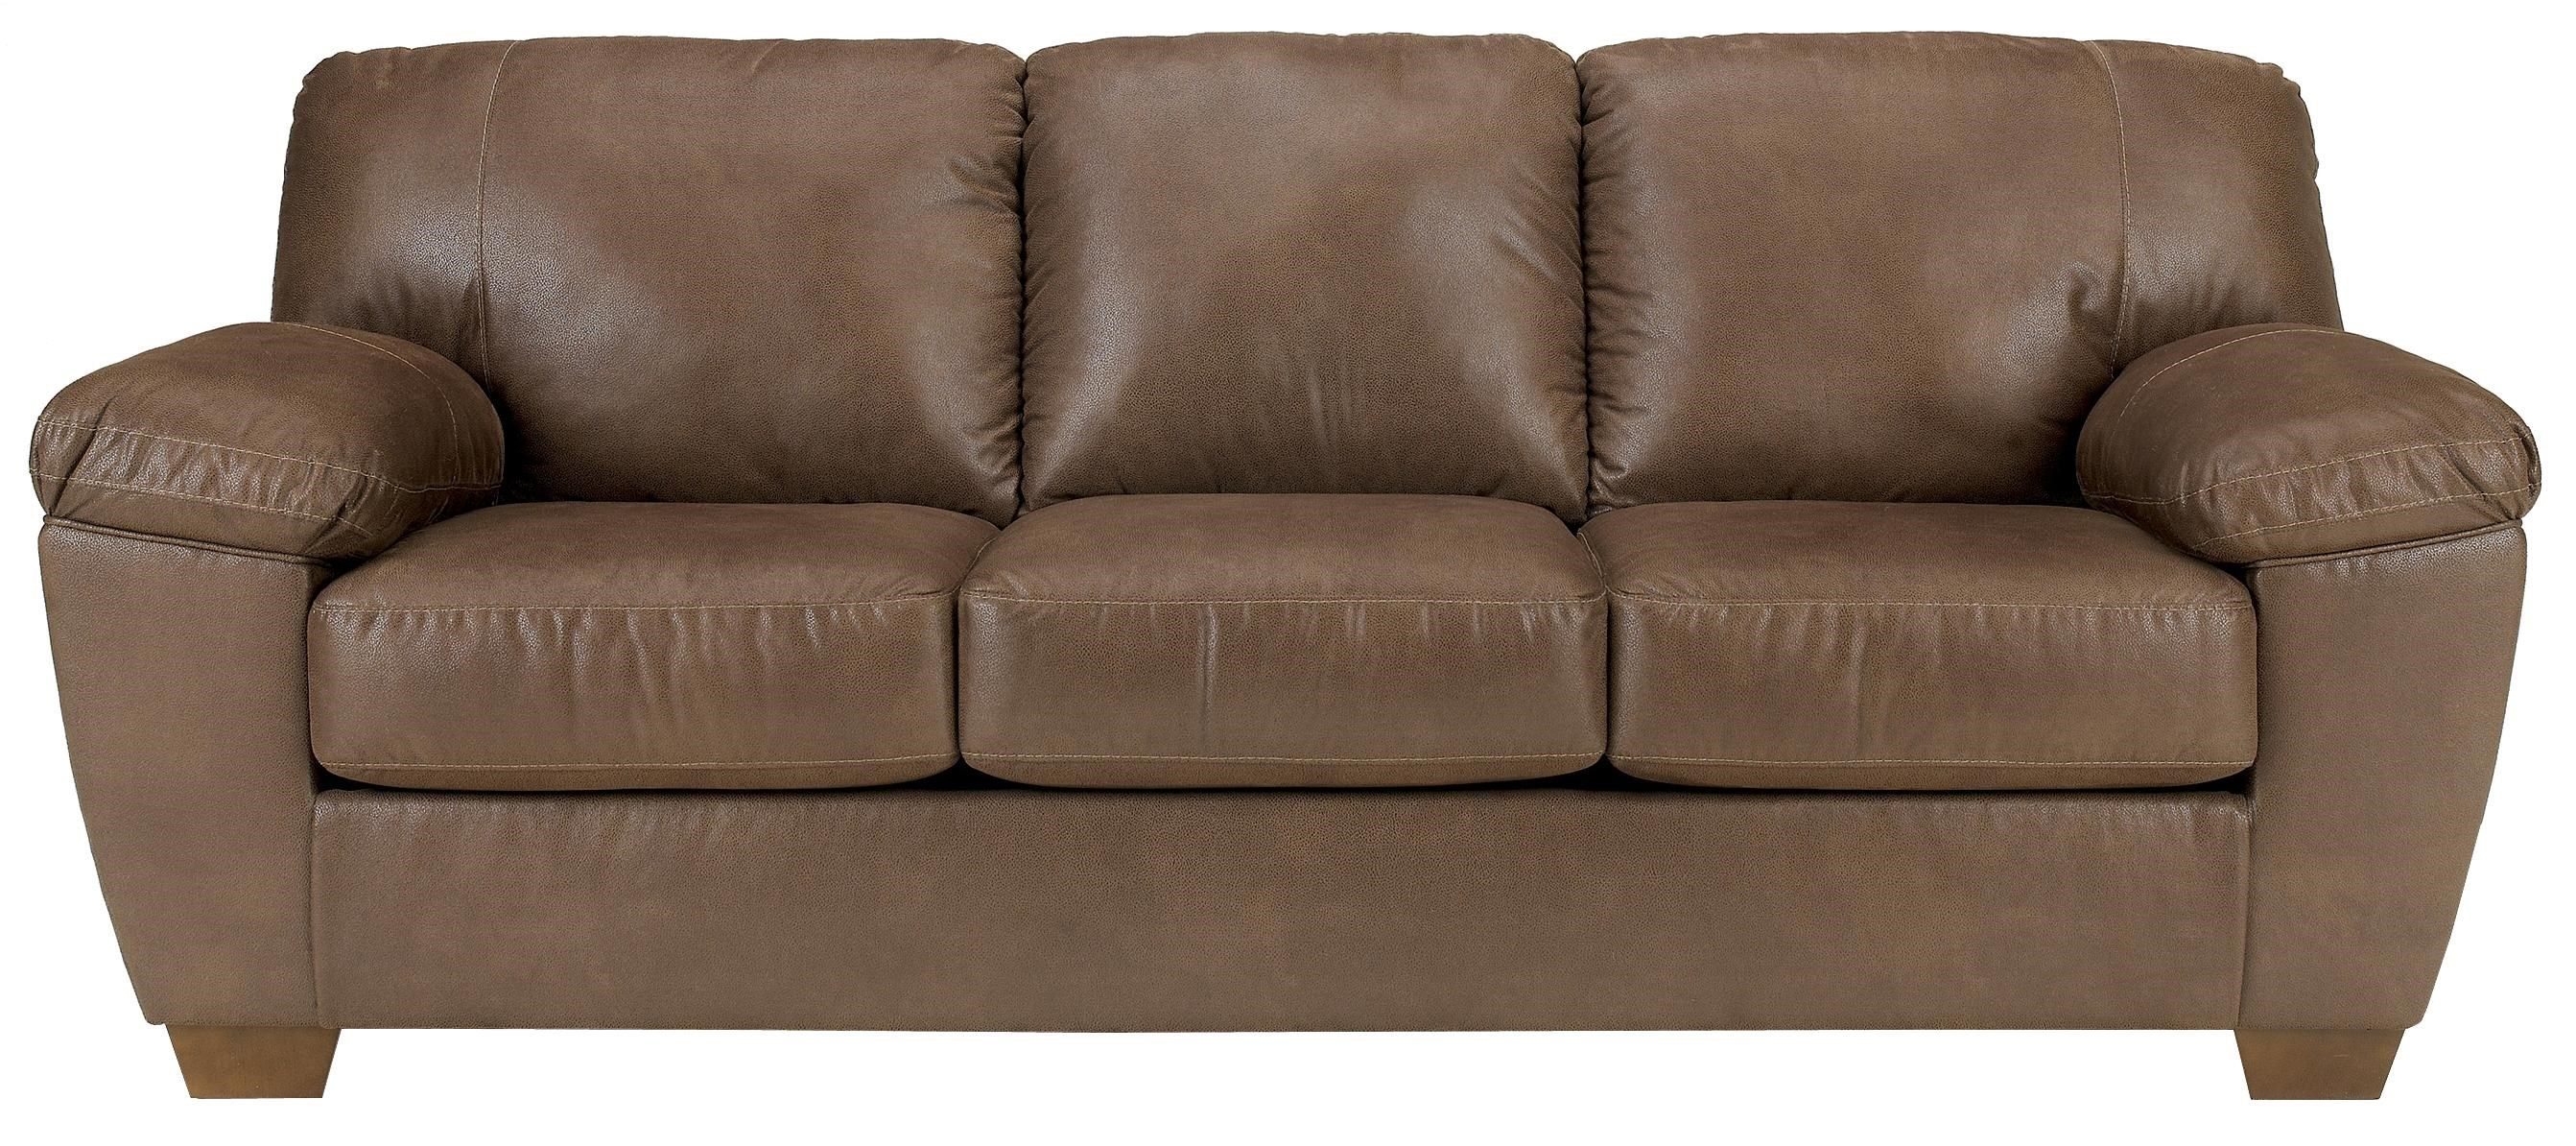 Signature Design By Ashley Amazon   Walnut Sofa With Pillow Arms   Becker  Furniture World   Sofa